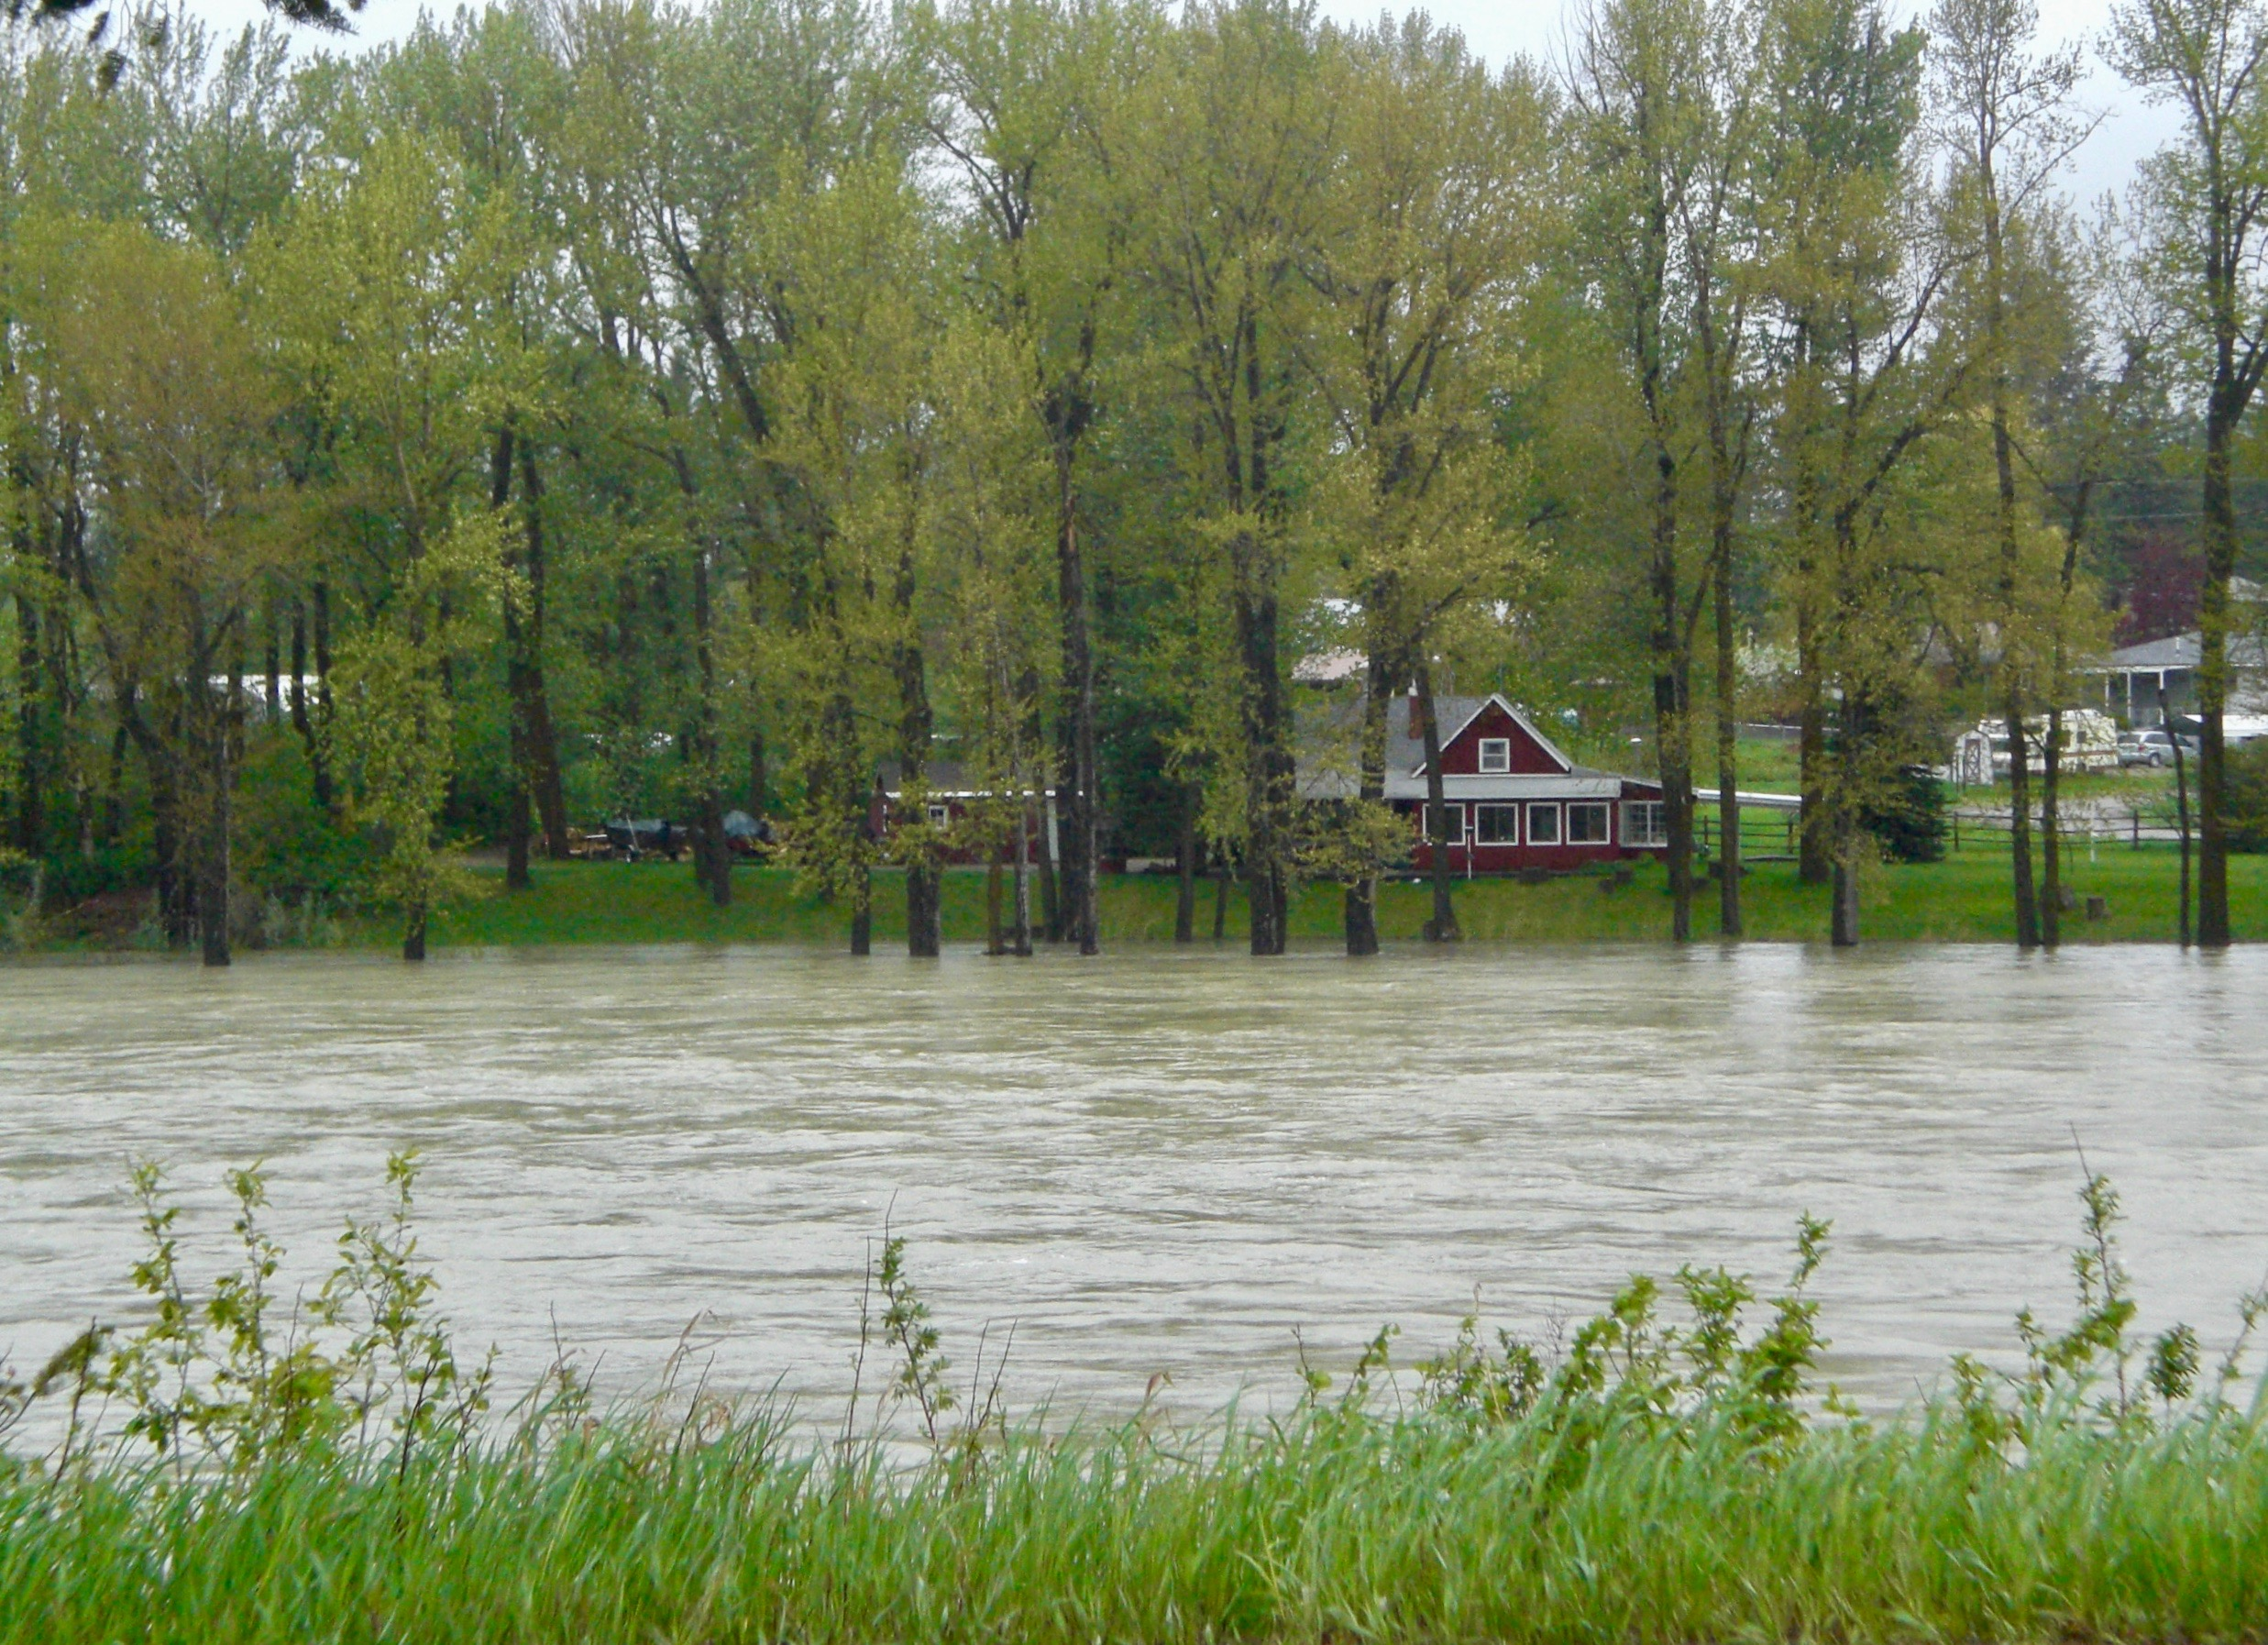 Disappearing banks of the Whitefish River